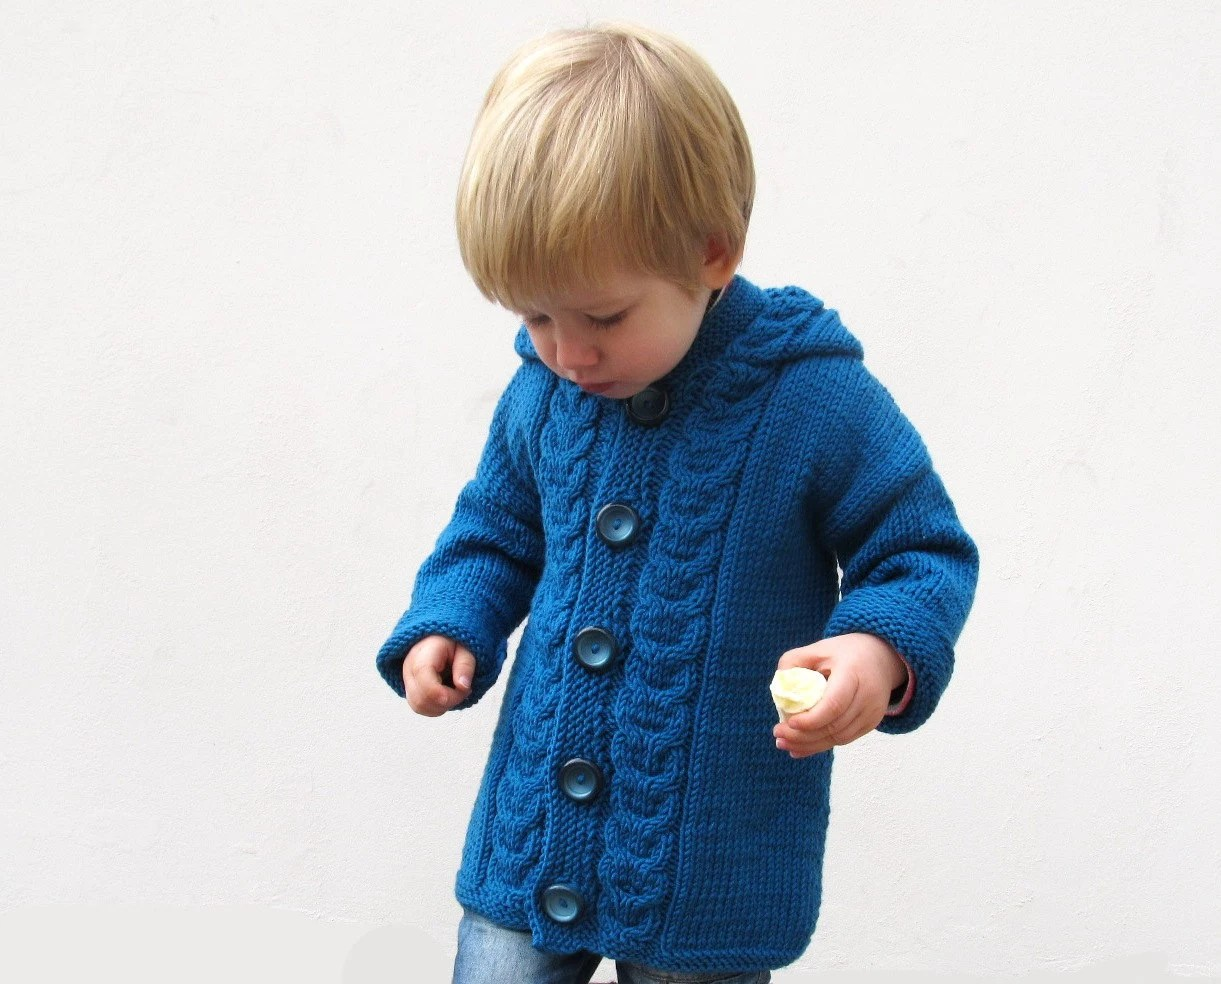 Kids sweater Hand knitted merino wool jacket for toddler Blue Kids cardigan Knitted kids coat Made to order - Junikid